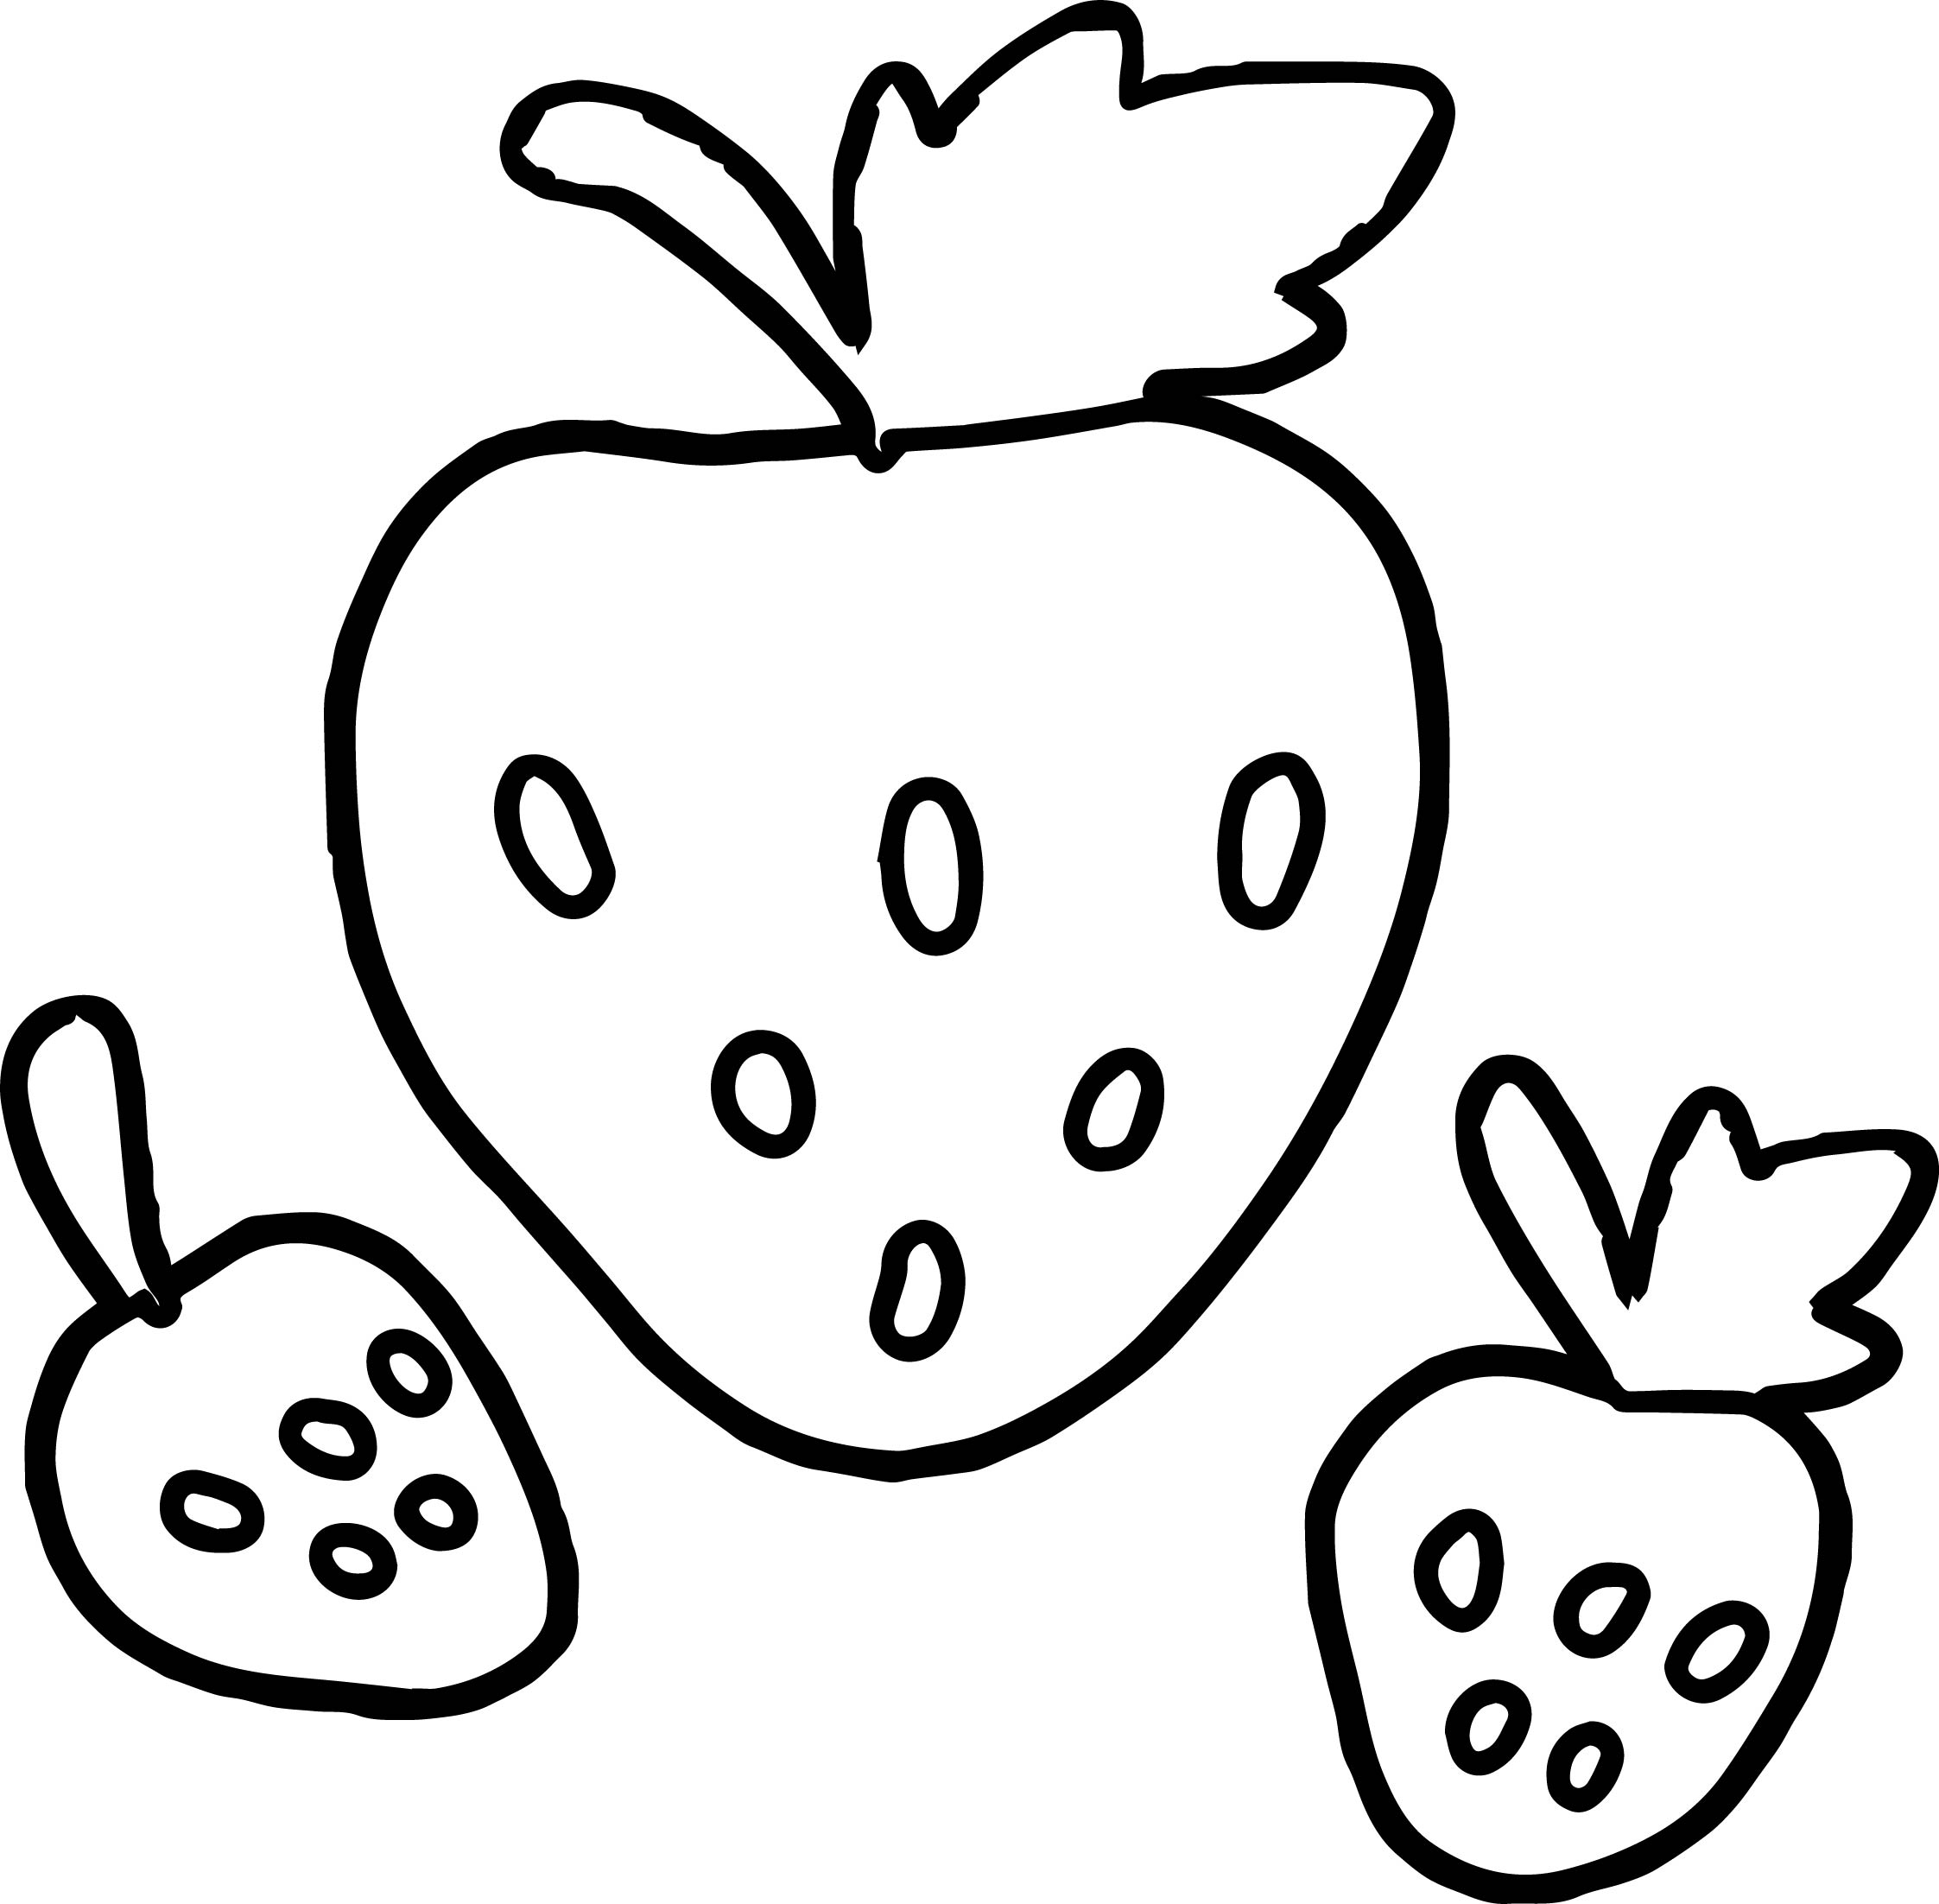 basic three strawberry coloring page